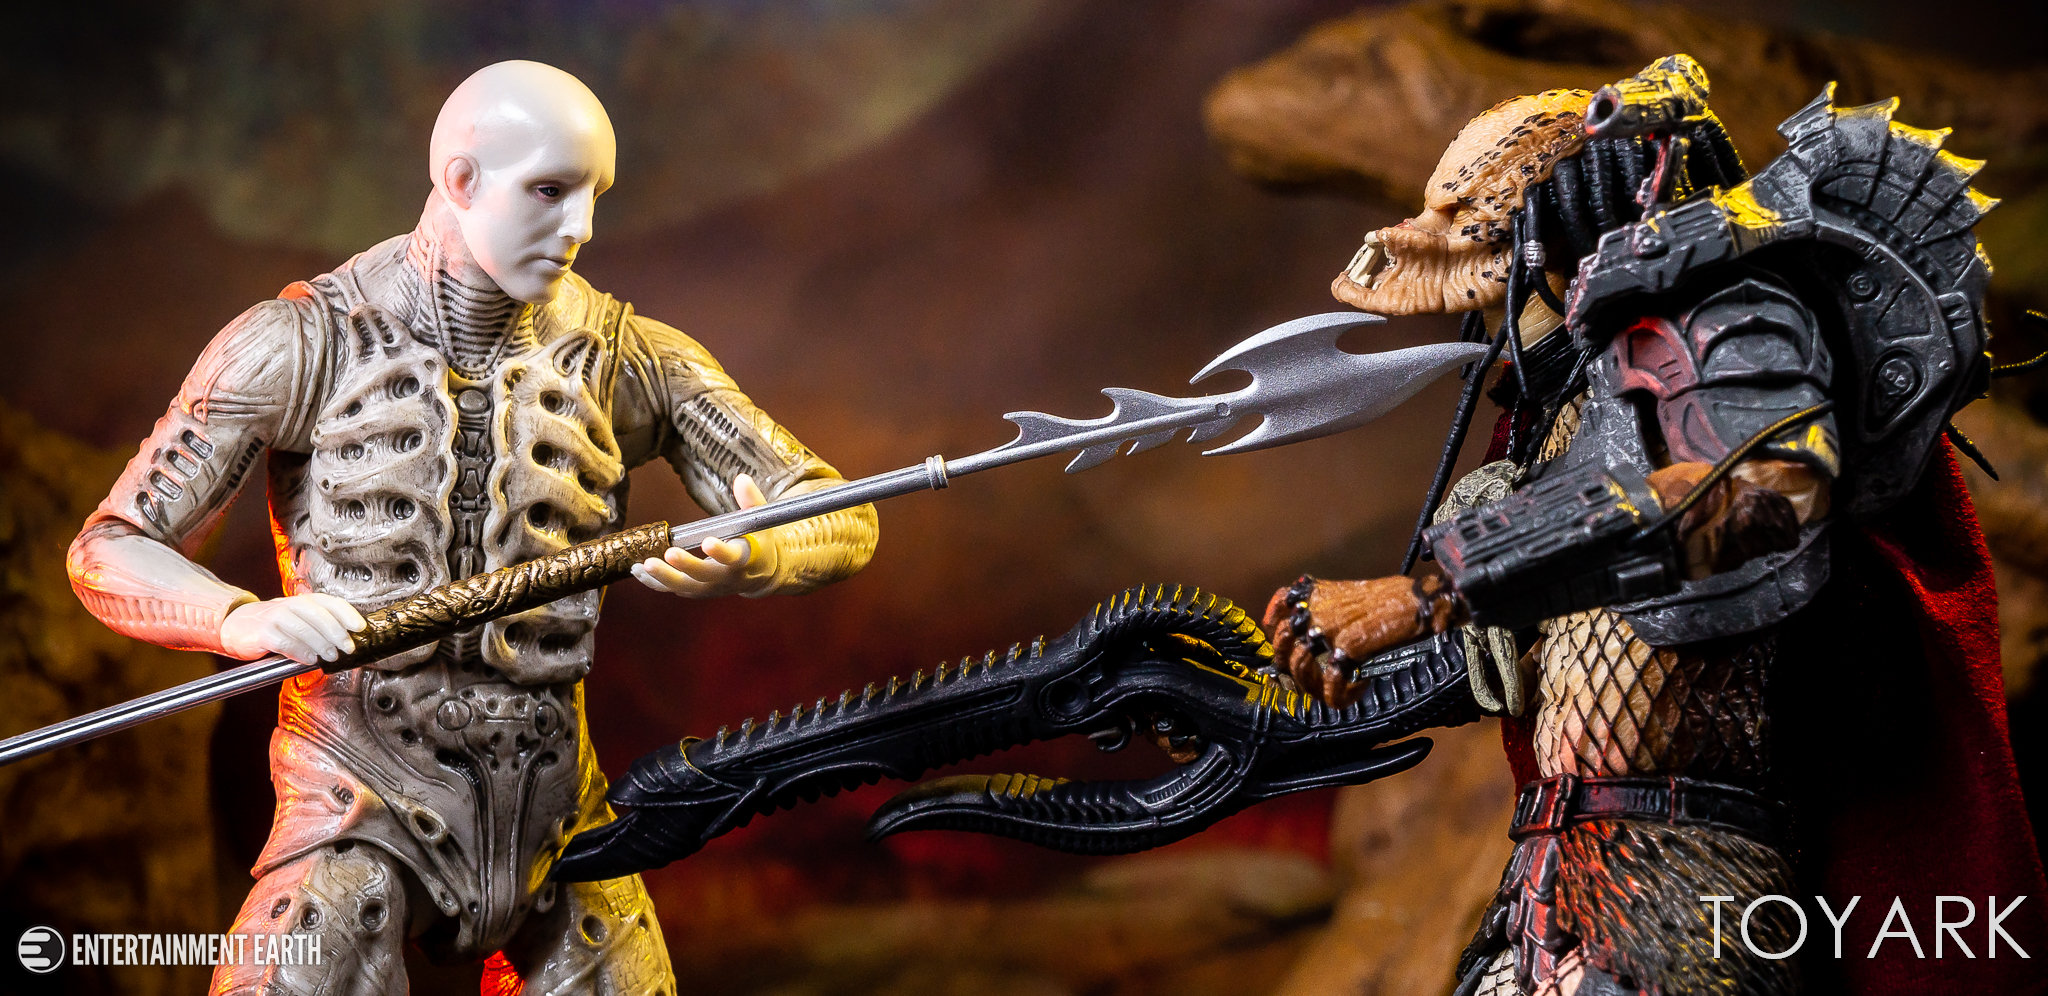 https://news.toyark.com/wp-content/uploads/sites/4/2018/11/NECA-Ultimate-Ahab-Predator-050.jpg